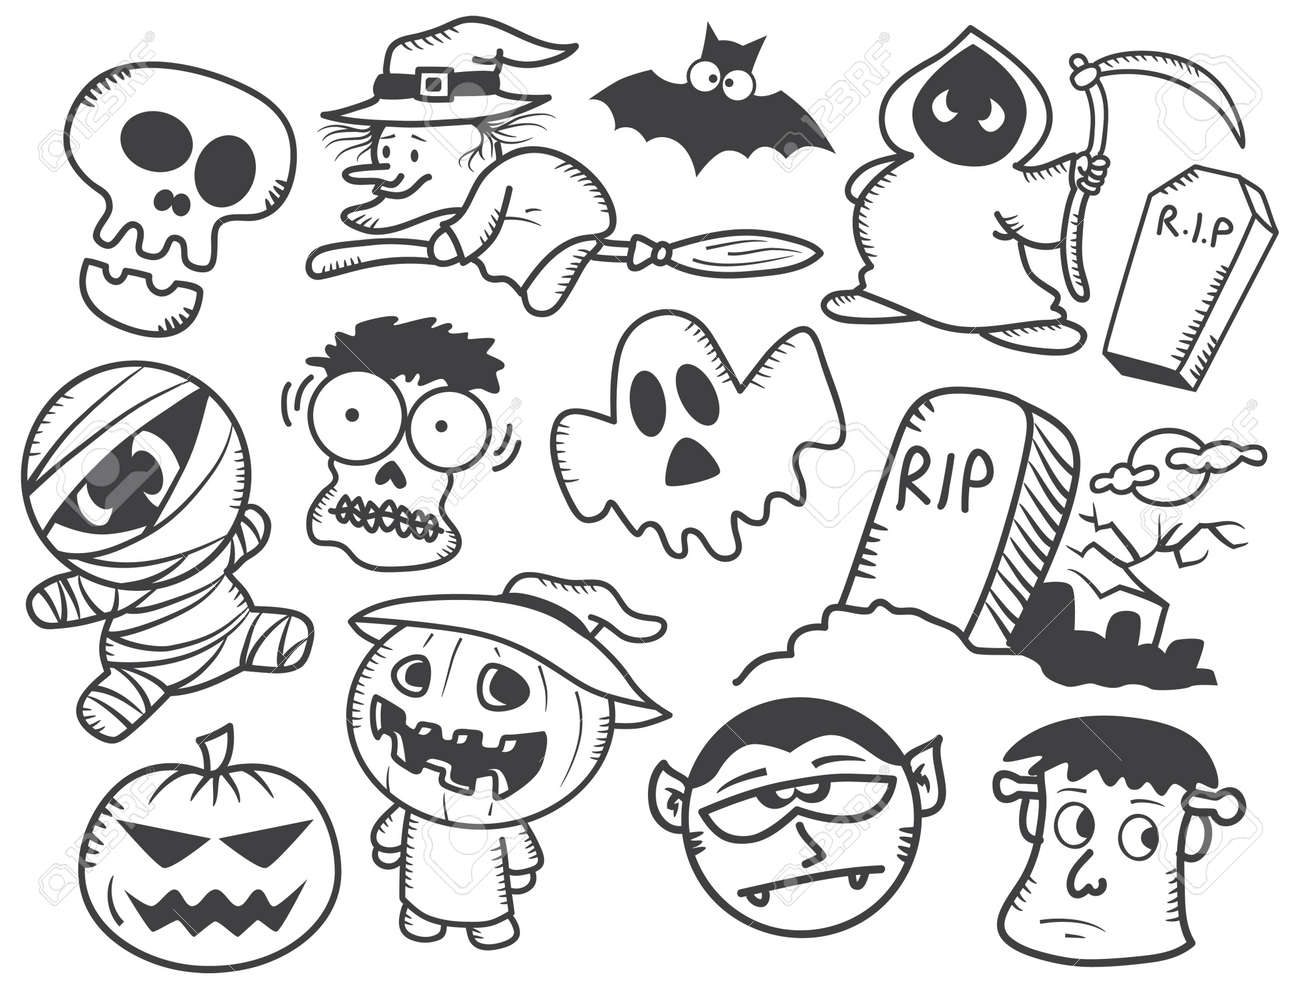 Halloween Doodle Royalty Free Cliparts, Vectors, And Stock ...